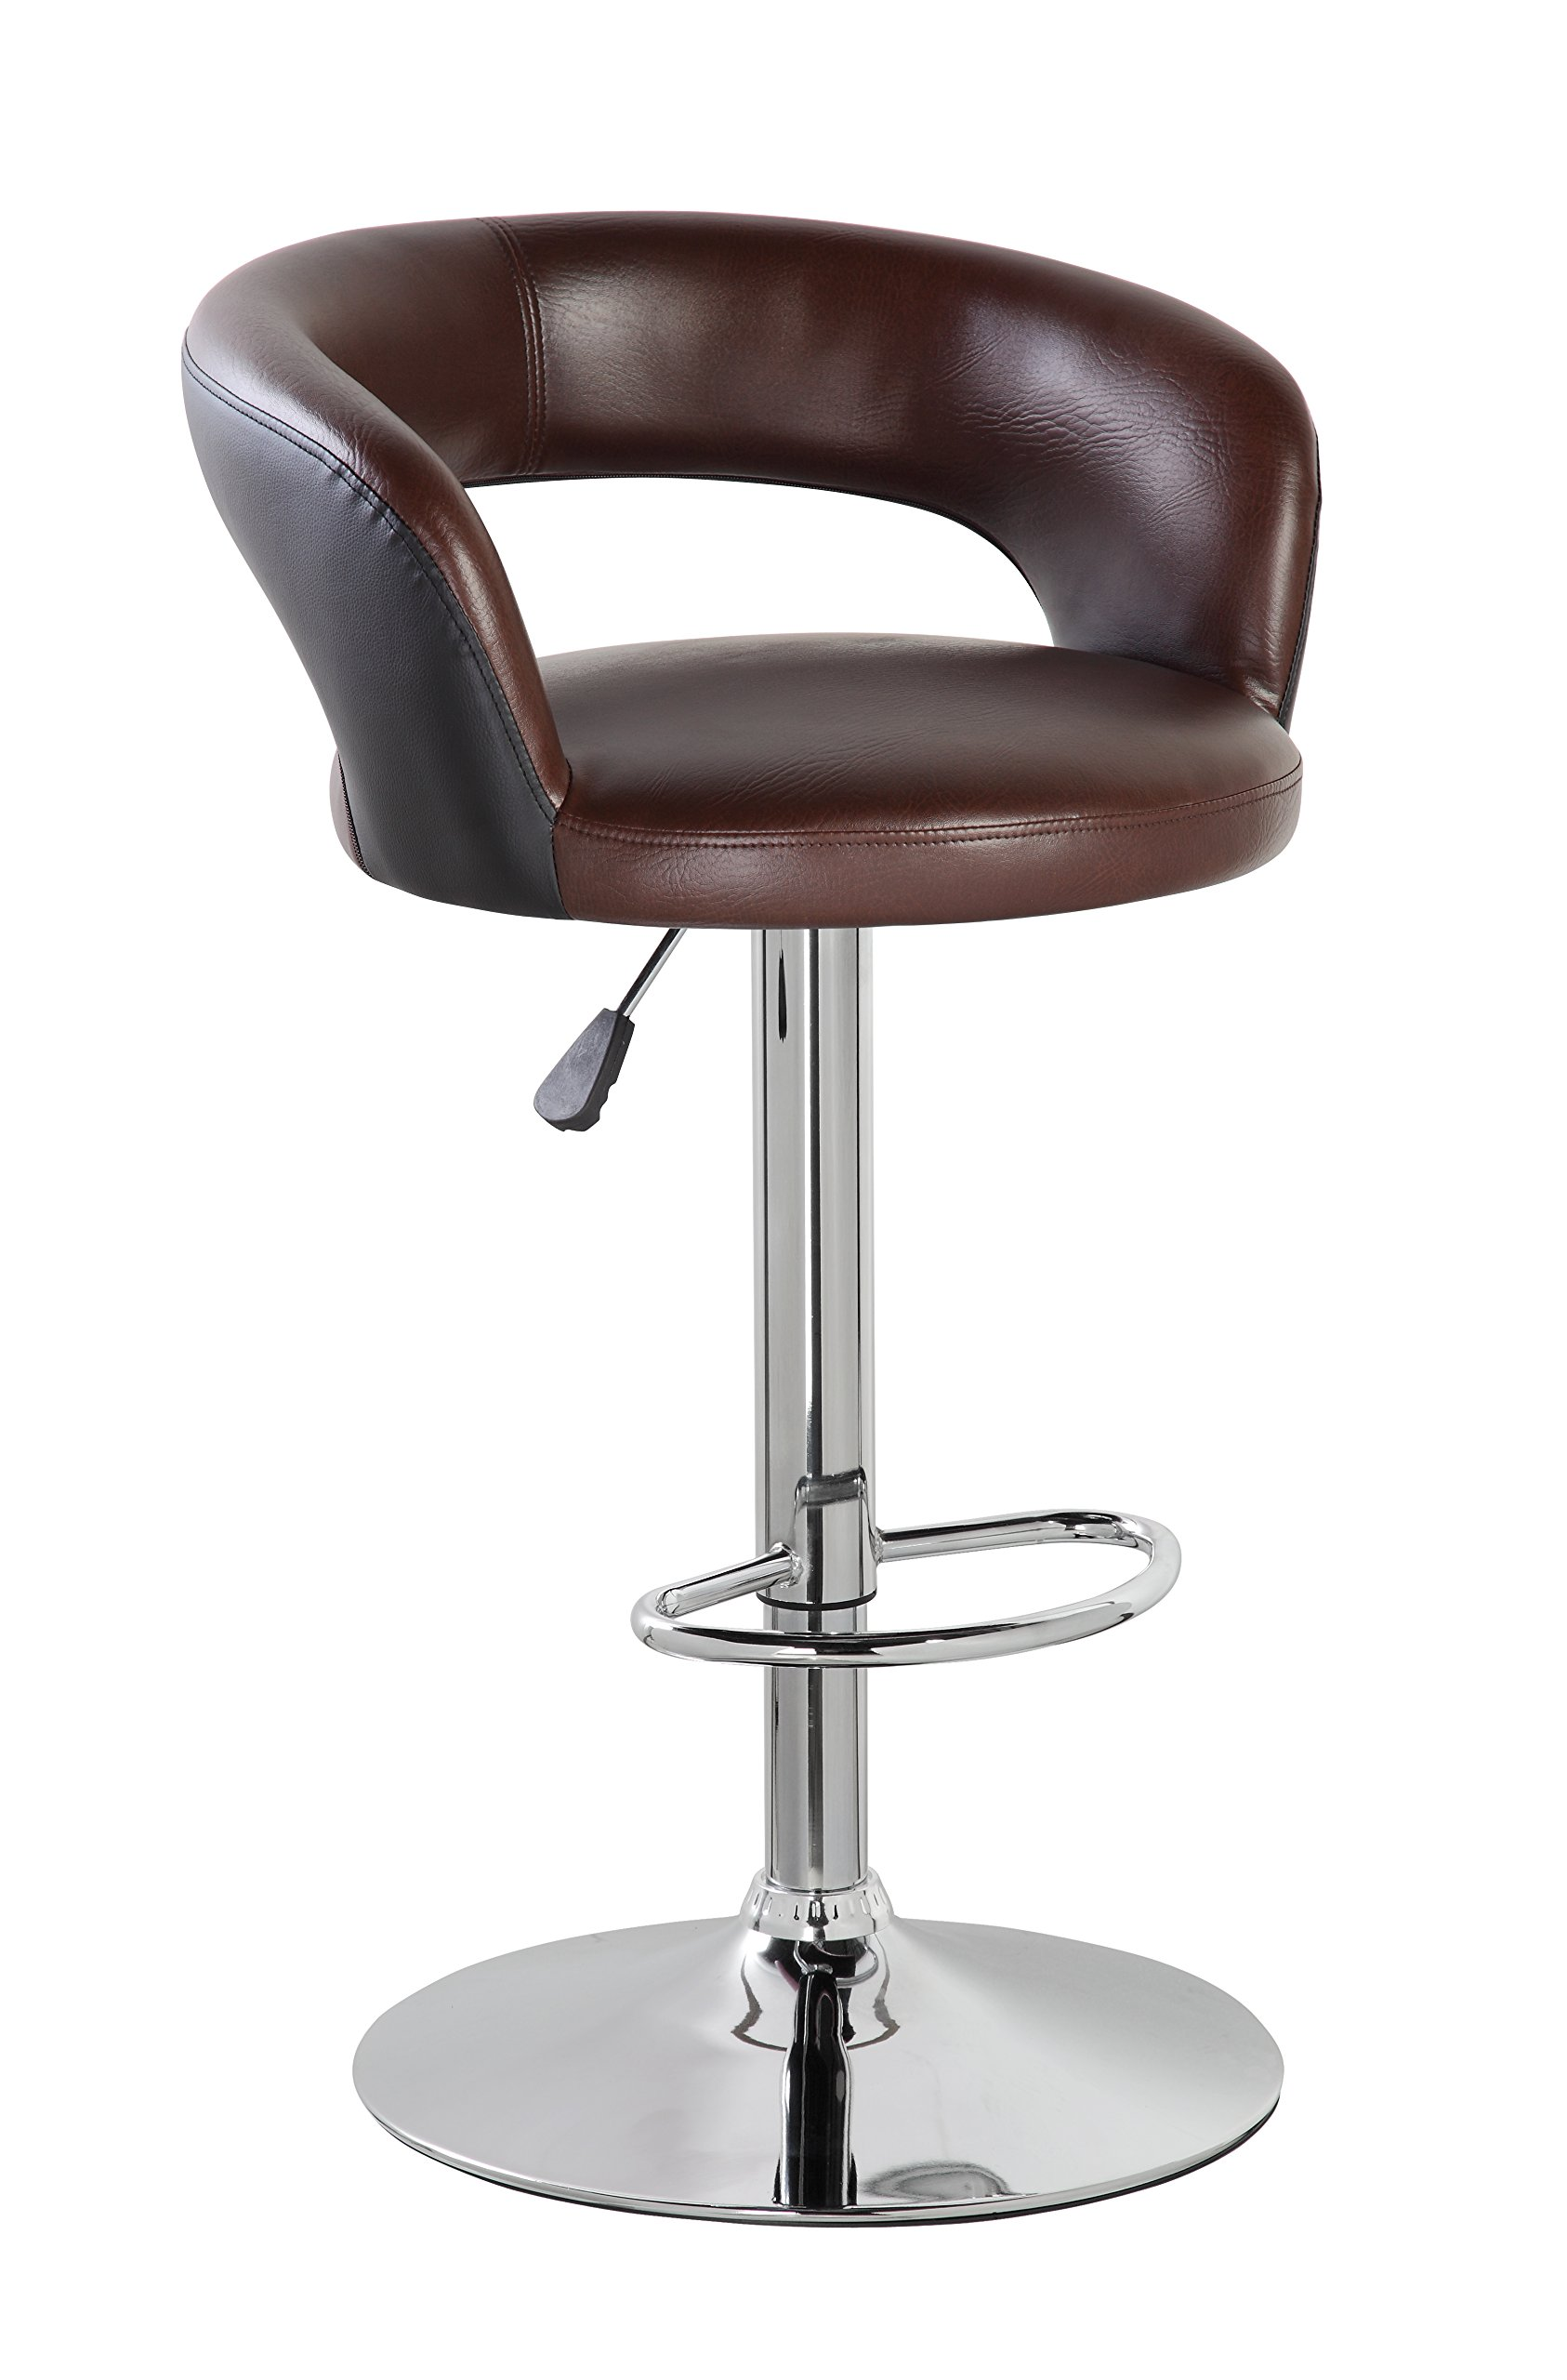 KERLAND Adjustable Bar Stool with Back, Modern PU Leather Barstool Kitchen Swivel Counter Height Bar Stools Chair with Chrome Footrest (Brown)